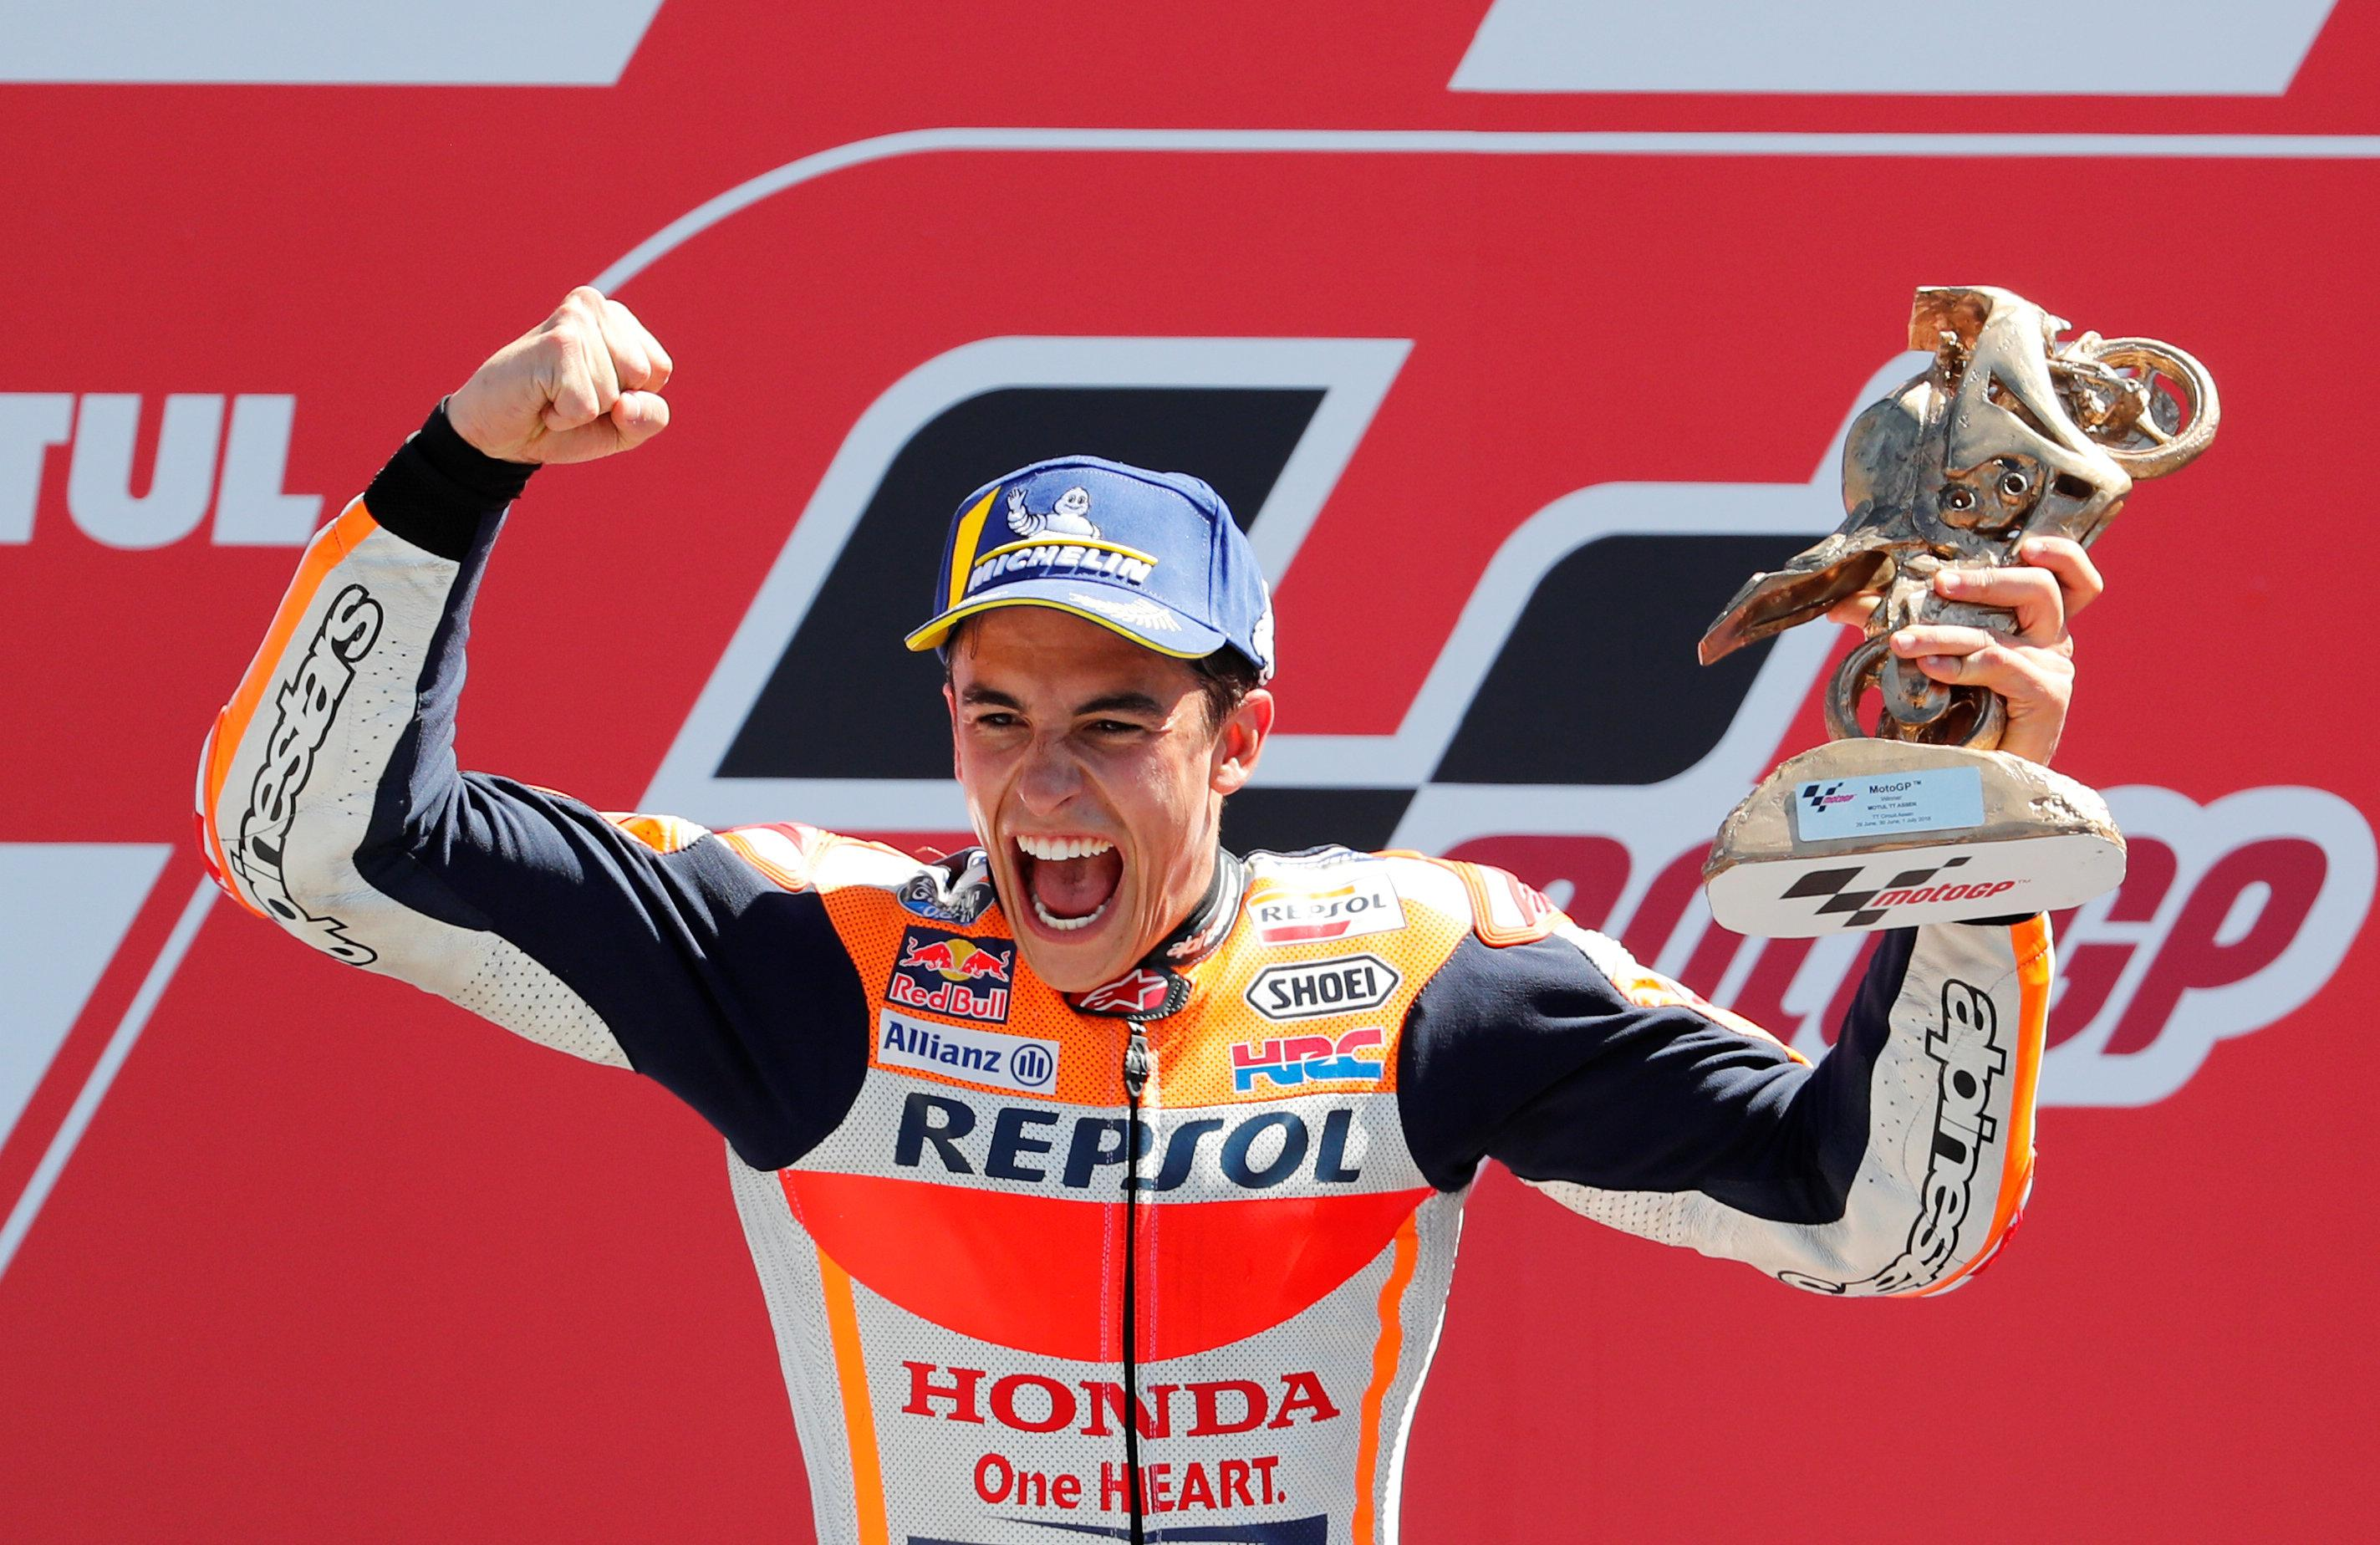 Marc Marquez is all cheer atop the podium in Holland after winning the Dutch GP in style